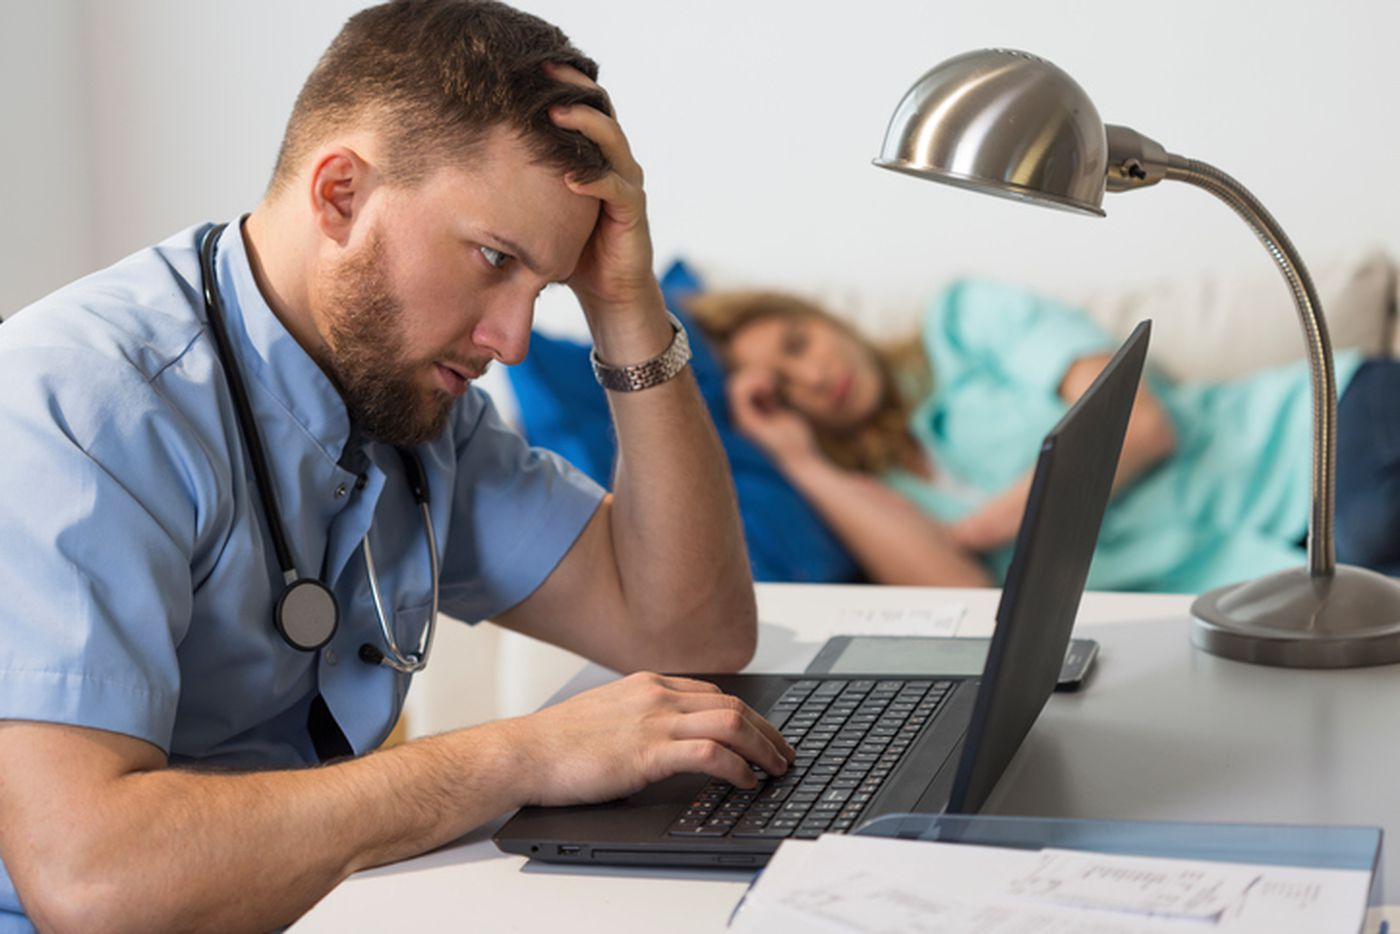 Despite fatigue fears, revised rules will let rookie doctors work 28 hours straight